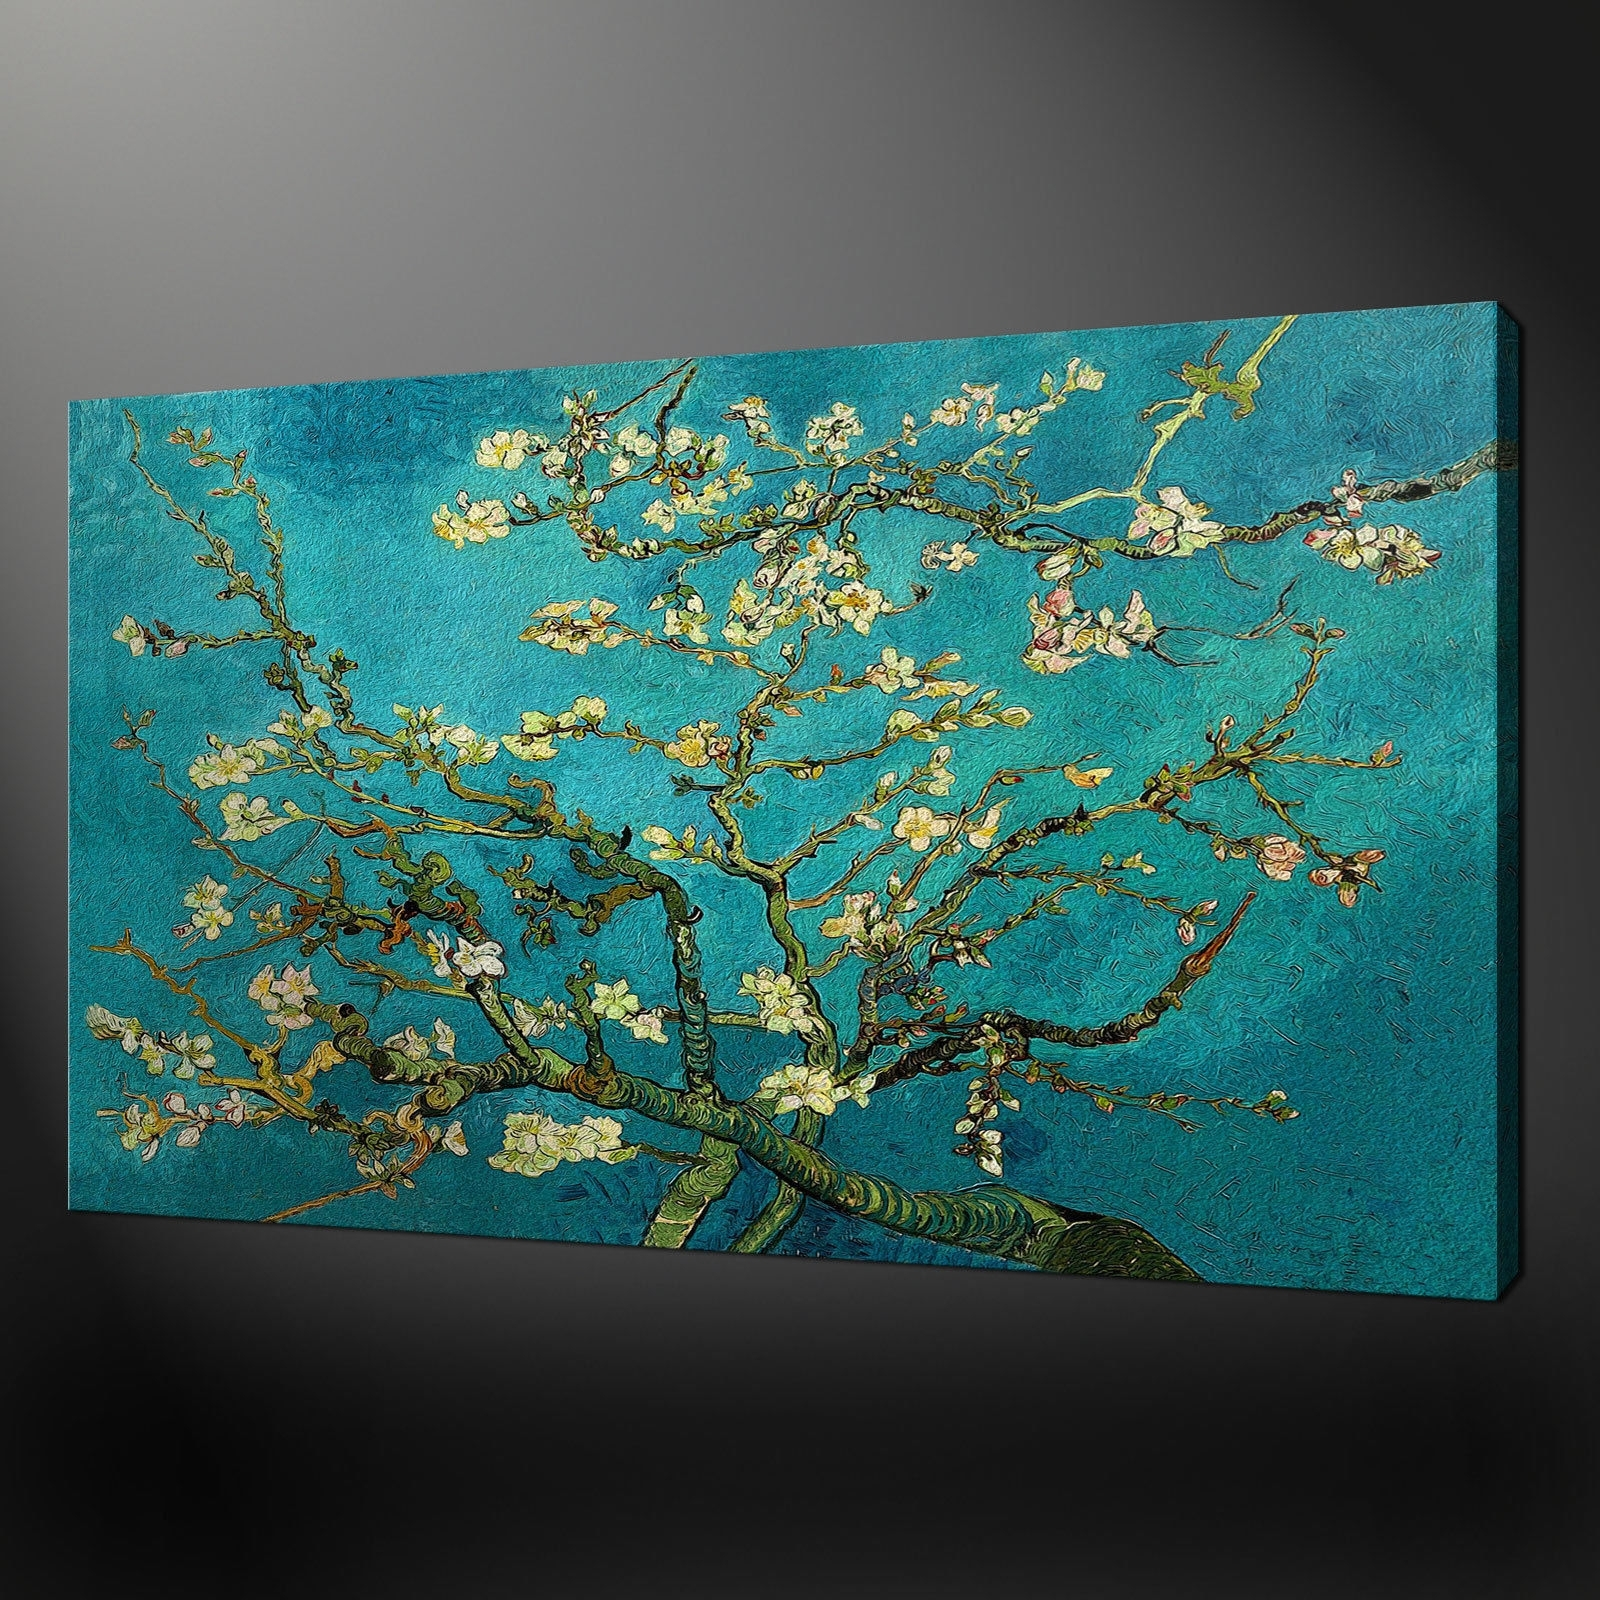 10 Best Collection Of Oversized Teal Canvas Wall Art Regarding Most Recent Next Canvas Wall Art (View 1 of 15)